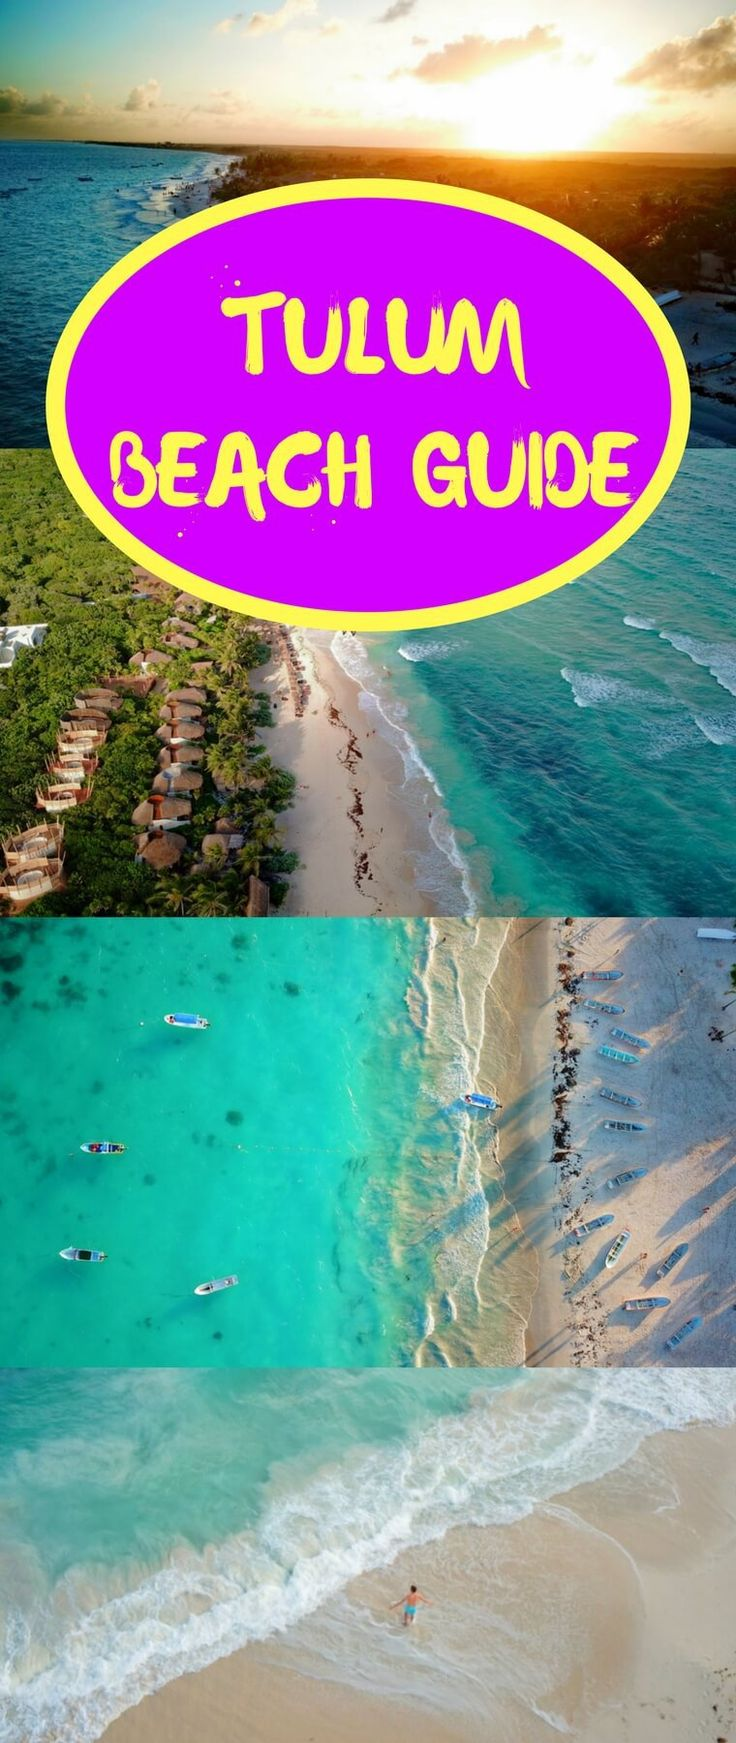 Tulum, Mexico has some of the best beaches in the world. This ultimate guide has everything you need to know about visiting Tulum's beaches. #Tulum #beaches